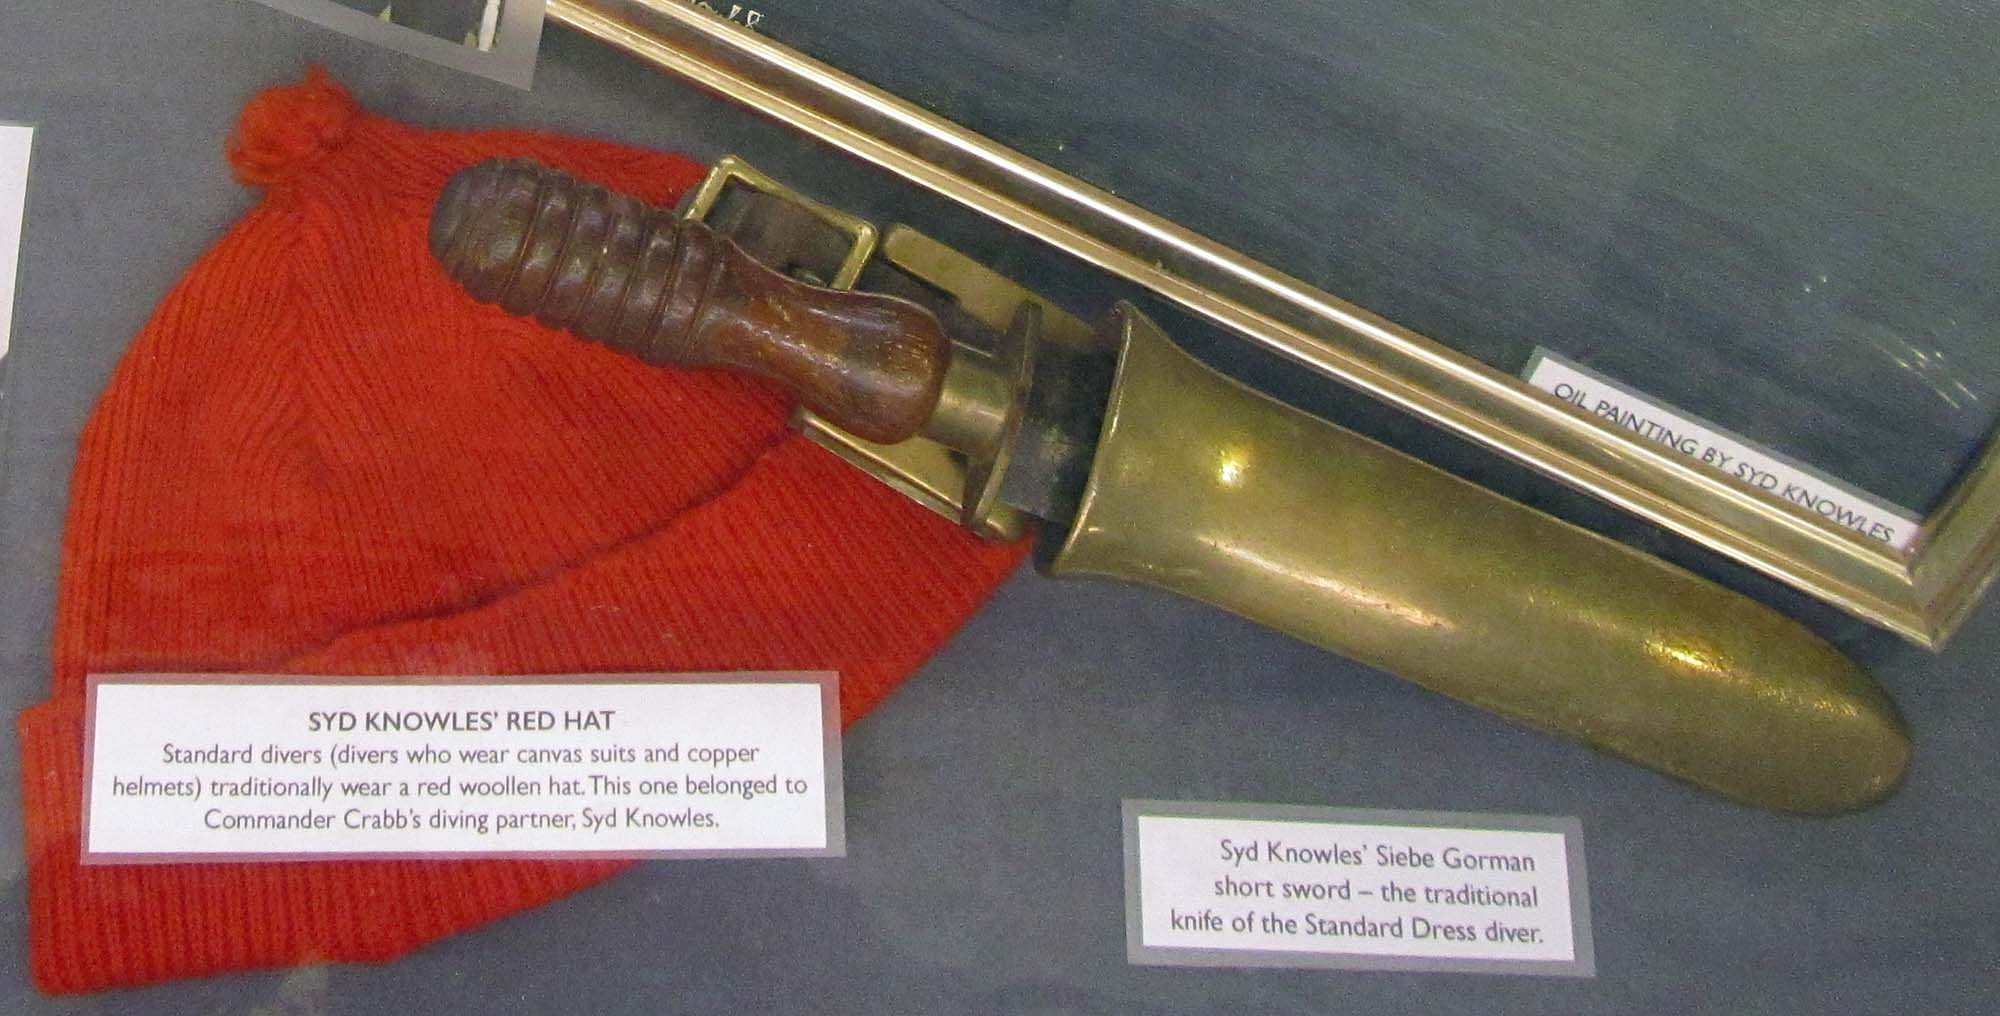 a photo of a knife and red woolly hat in a display case